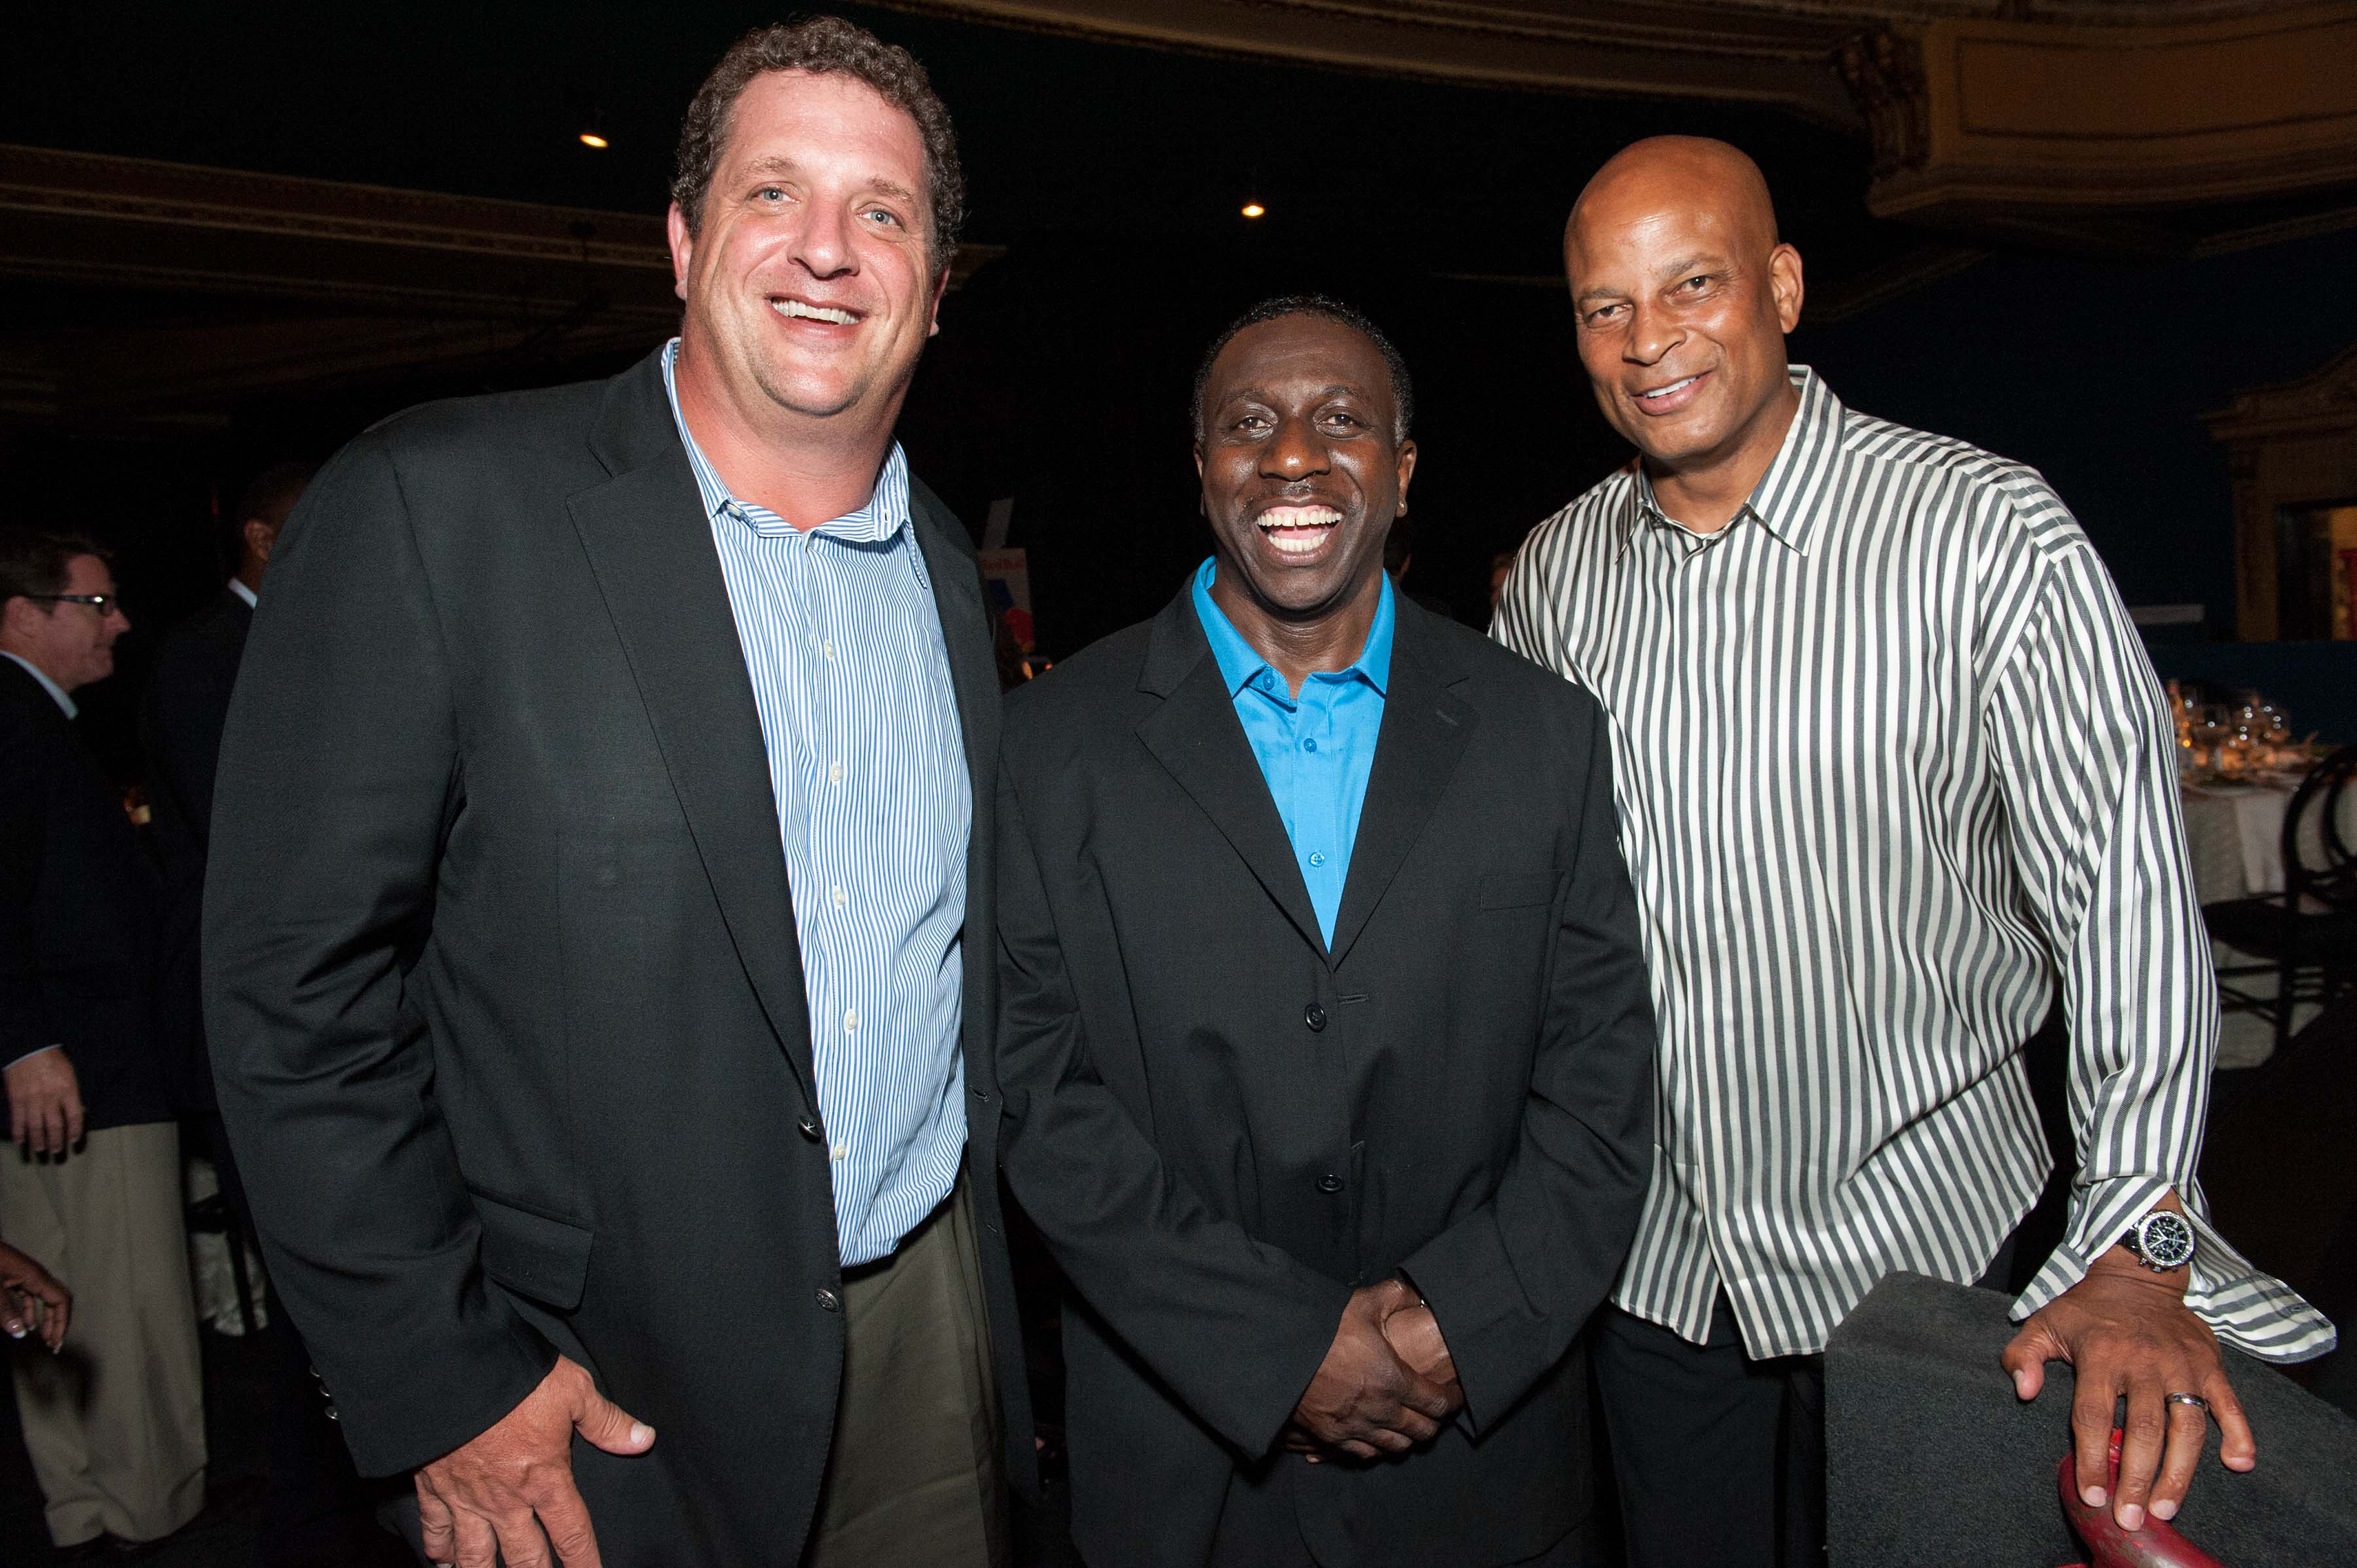 Harris Barton, Patrick Carroll, Ronnie Lott Photo: drewaltizer.com